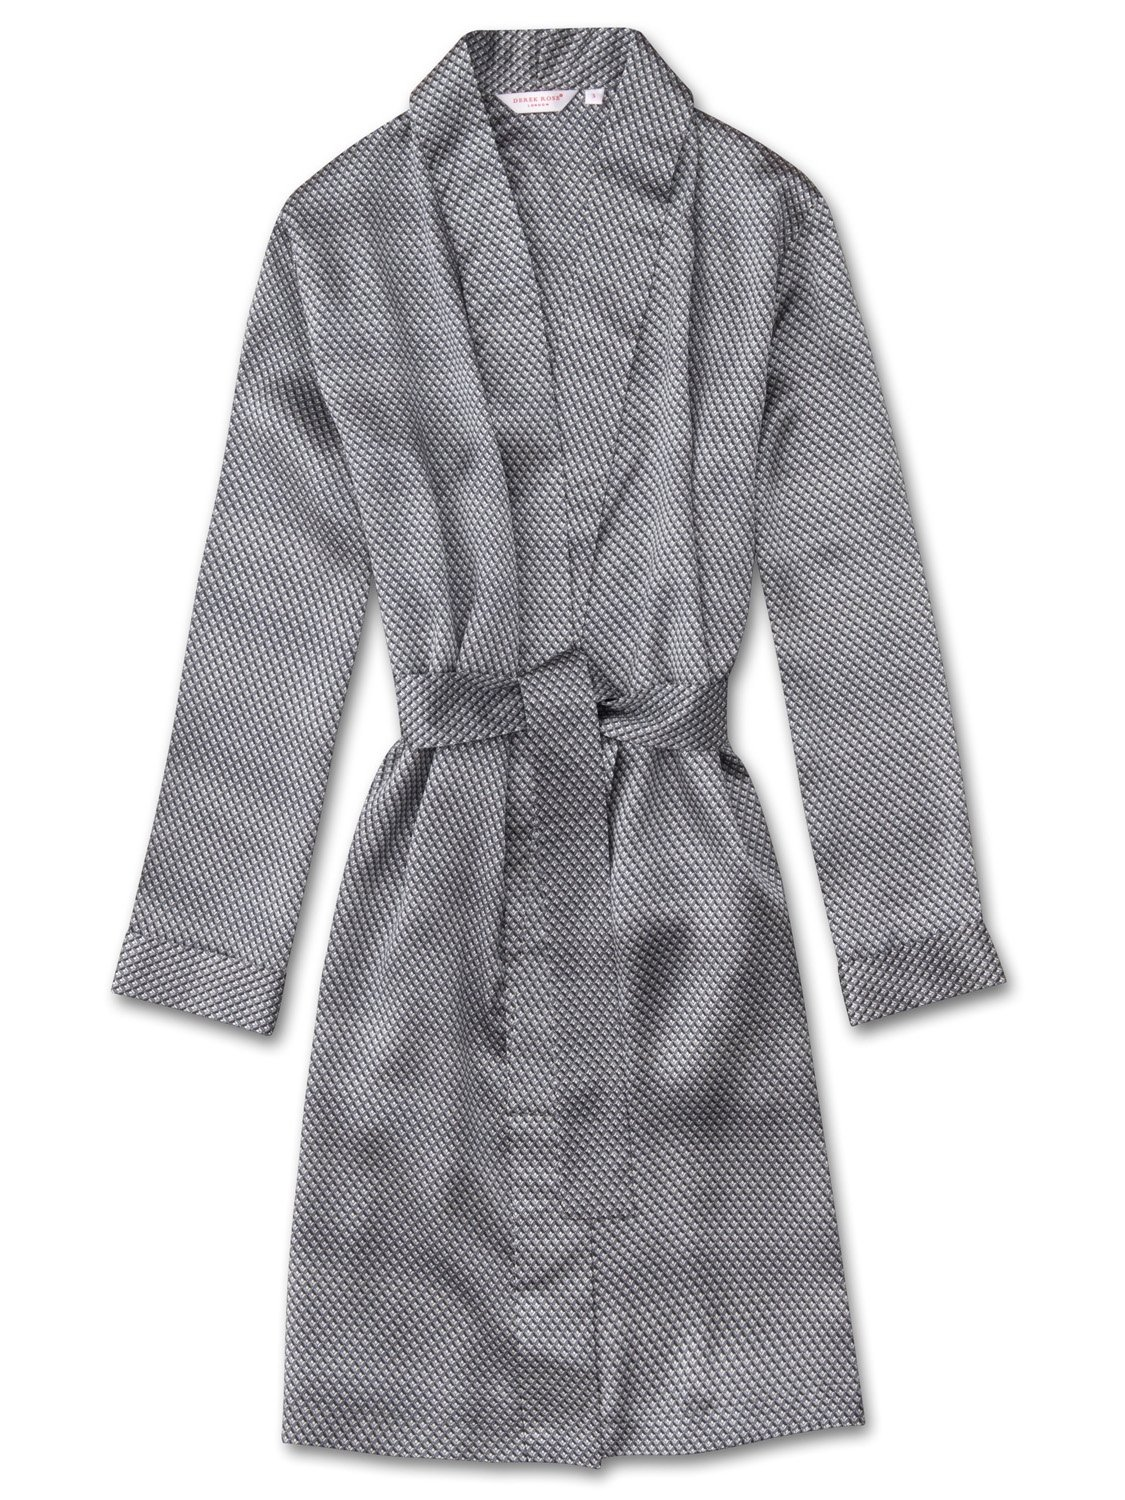 Women's Dressing Gown Brindisi 13 Pure Silk Satin Silver